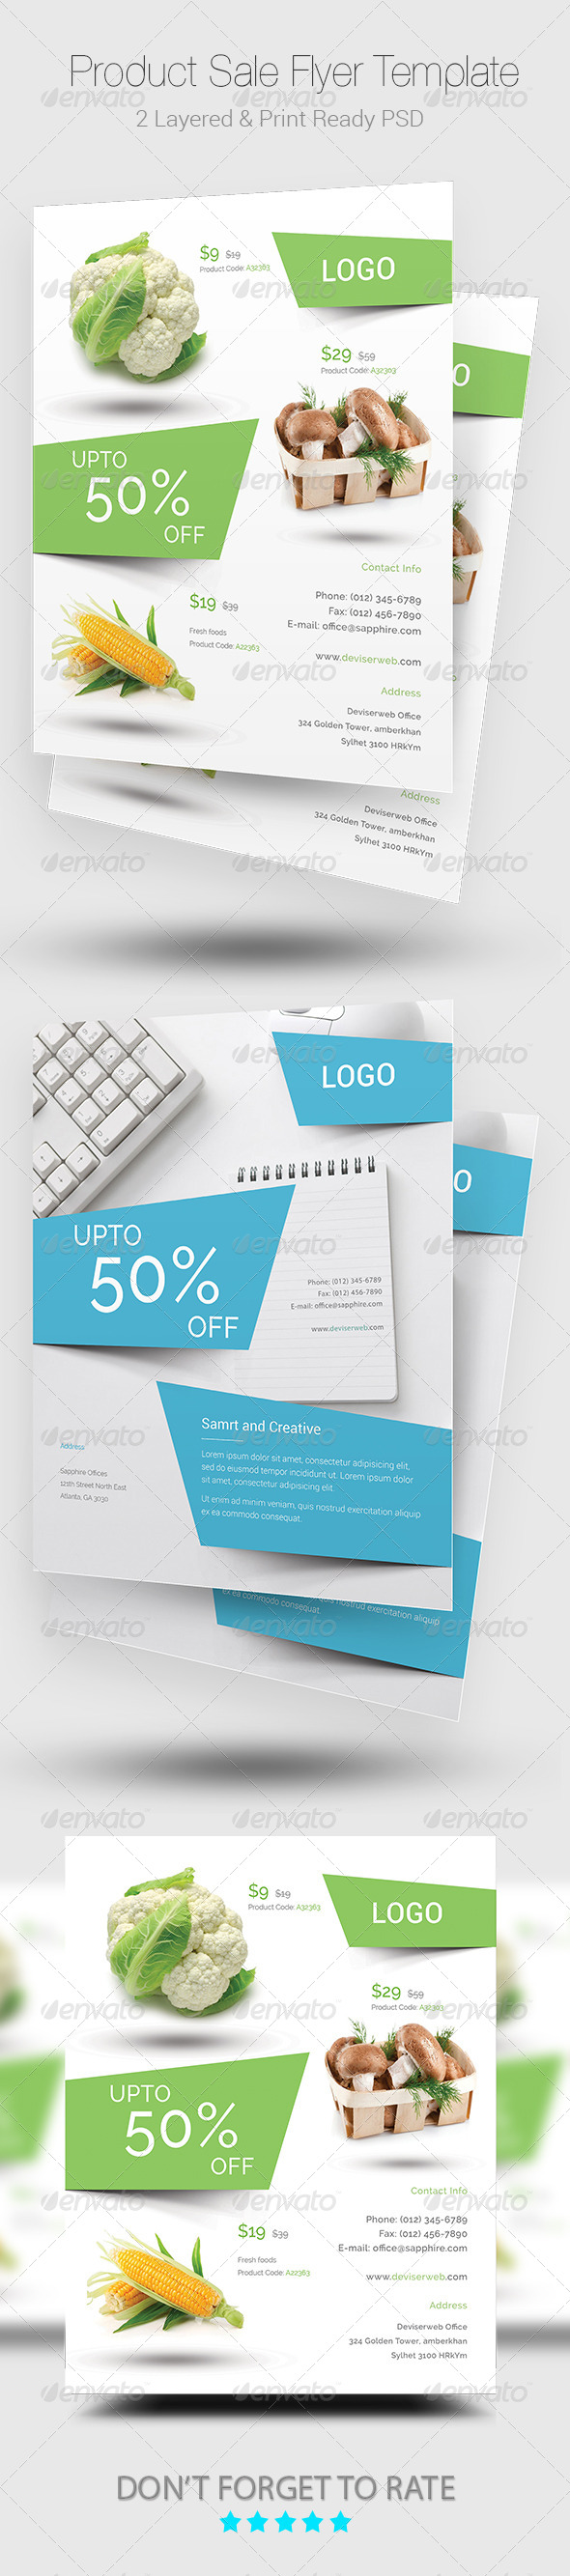 product sale flyer templates by rtralrayhan graphicriver